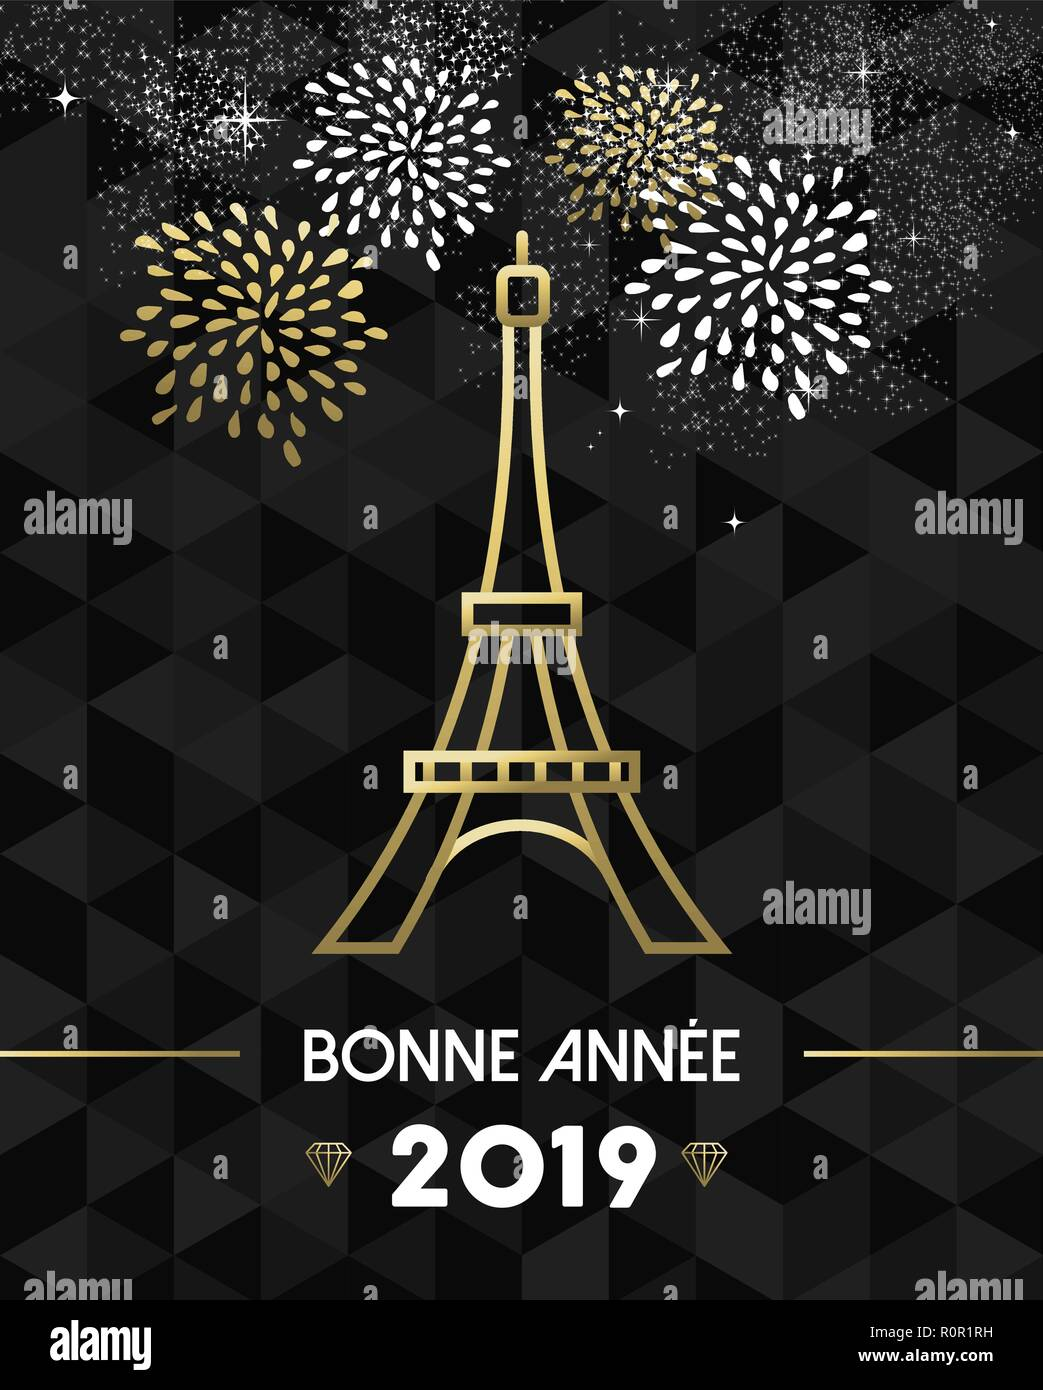 happy new year 2019 paris greeting card with france monument eiffel tower in gold outline style